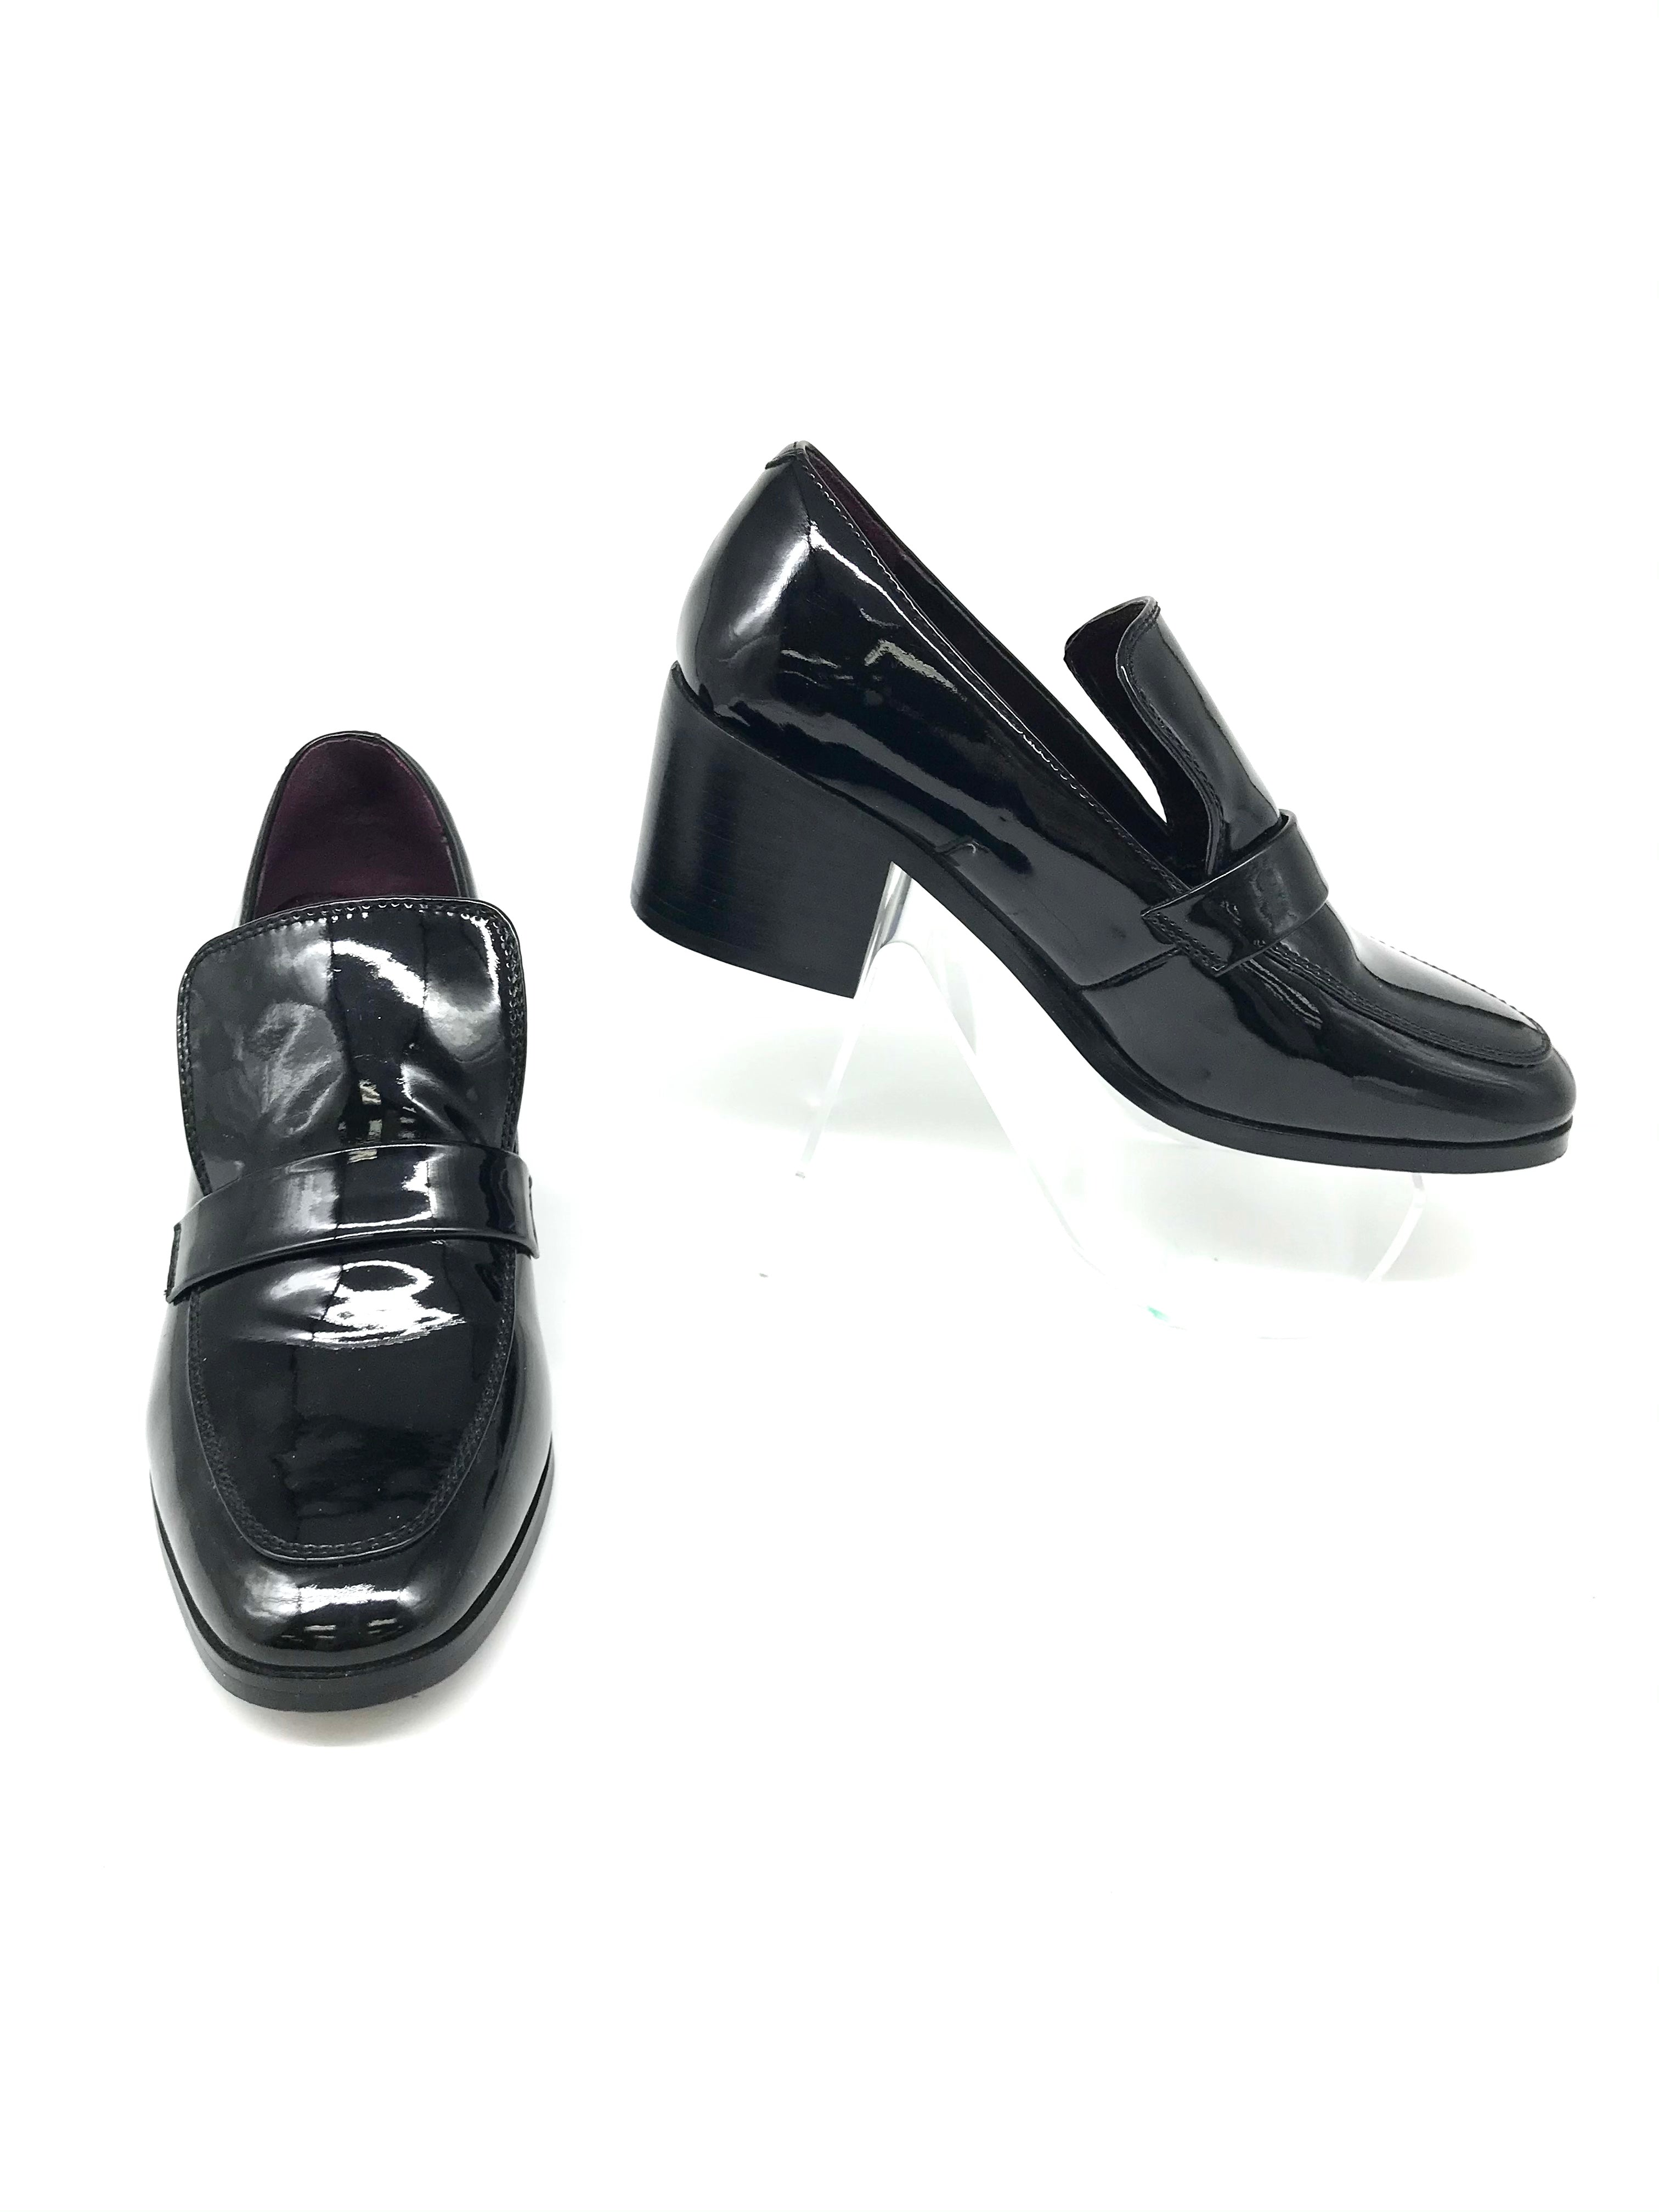 Primary Photo - BRAND: KENSIE <BR>STYLE: SHOES LOW HEEL <BR>COLOR: BLACK <BR>SIZE: 6.5 <BR>SKU: 262-26241-43612<BR>AS IS <BR>